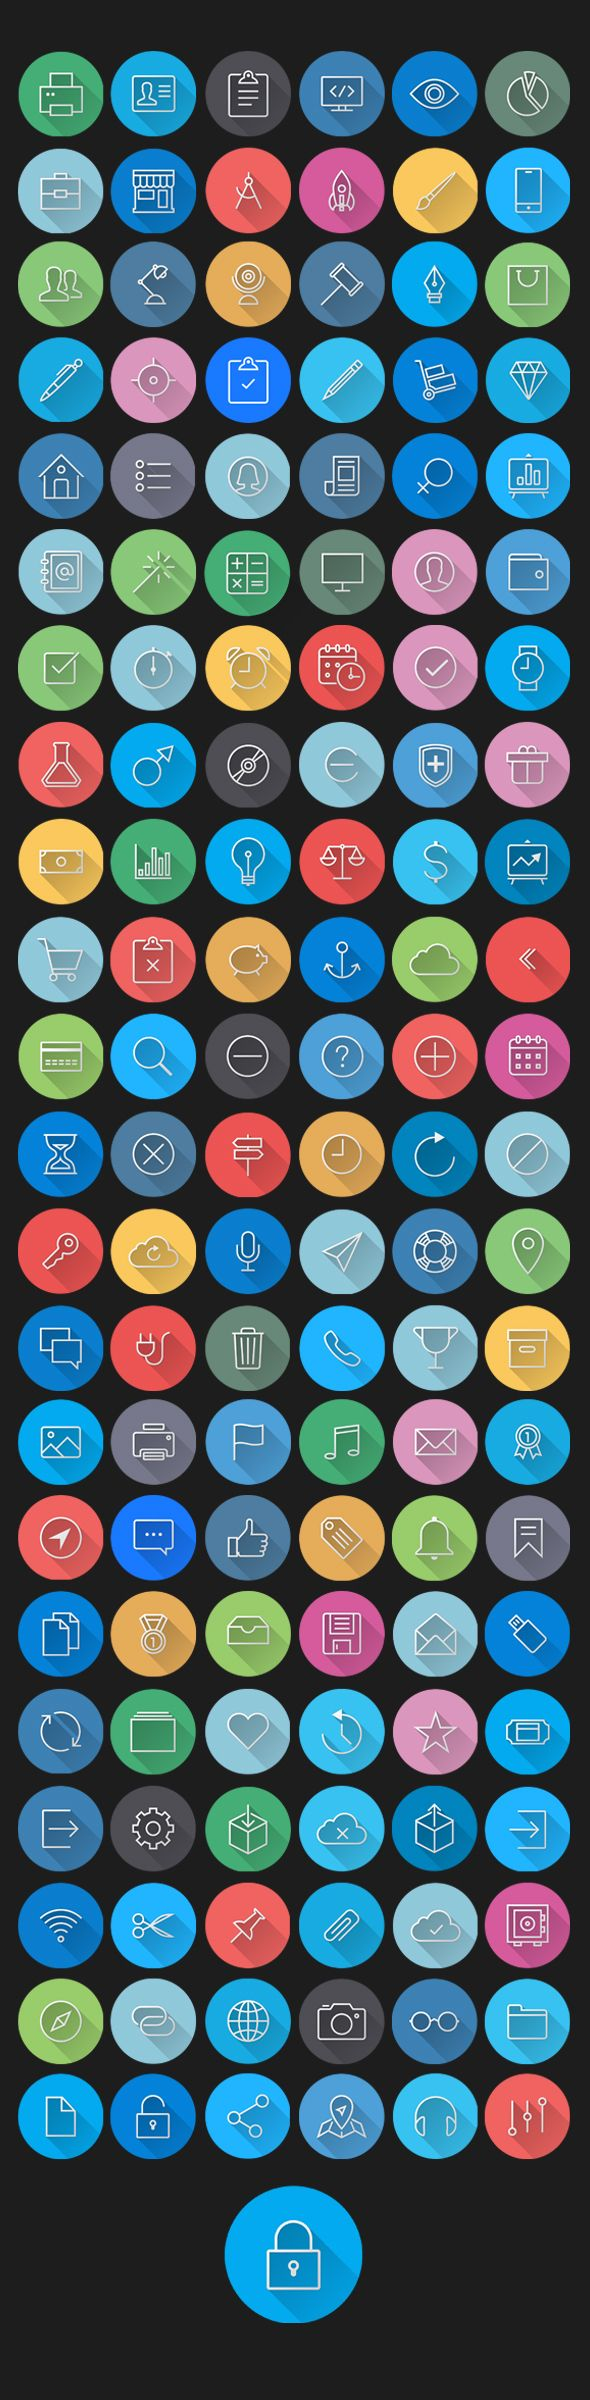 Stroke Flat Icons - Colorful Flat Icons | Icons by Daily Design Mag, via Behance